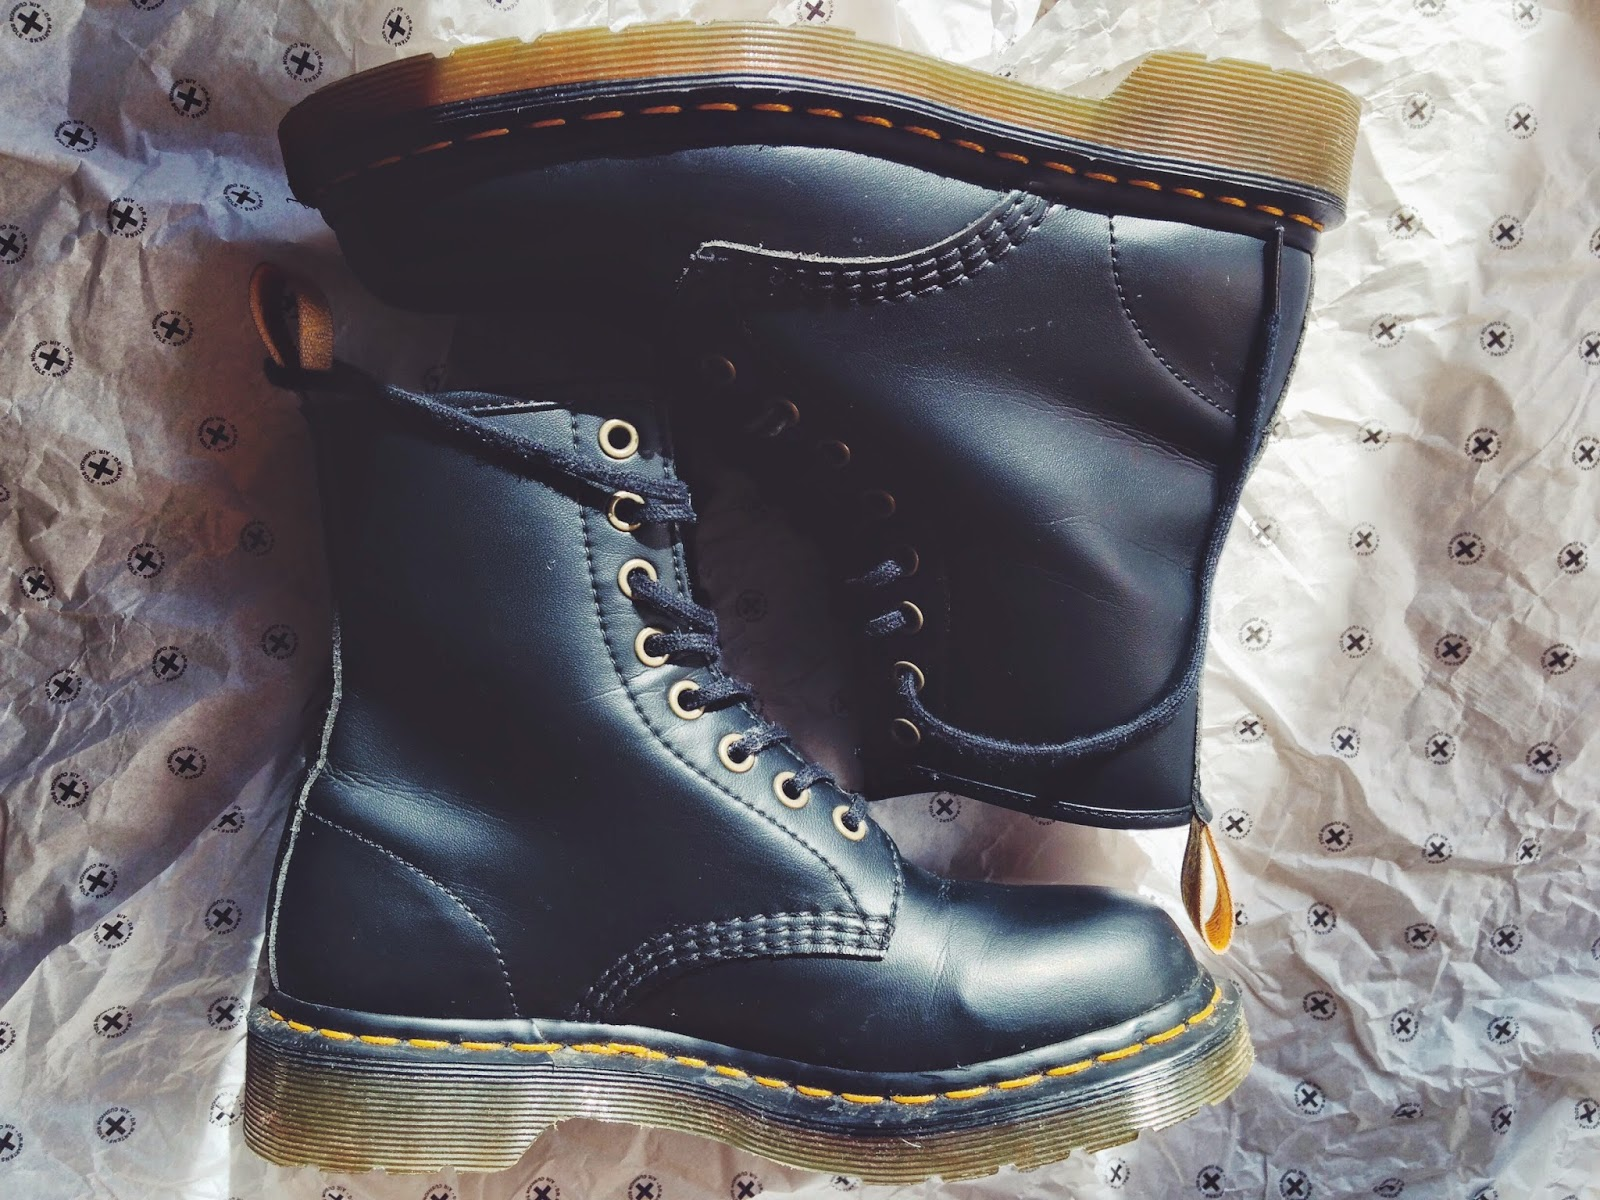 Review Curiously Boots 1460 Conscious Dr Vegan Martens zAIwX